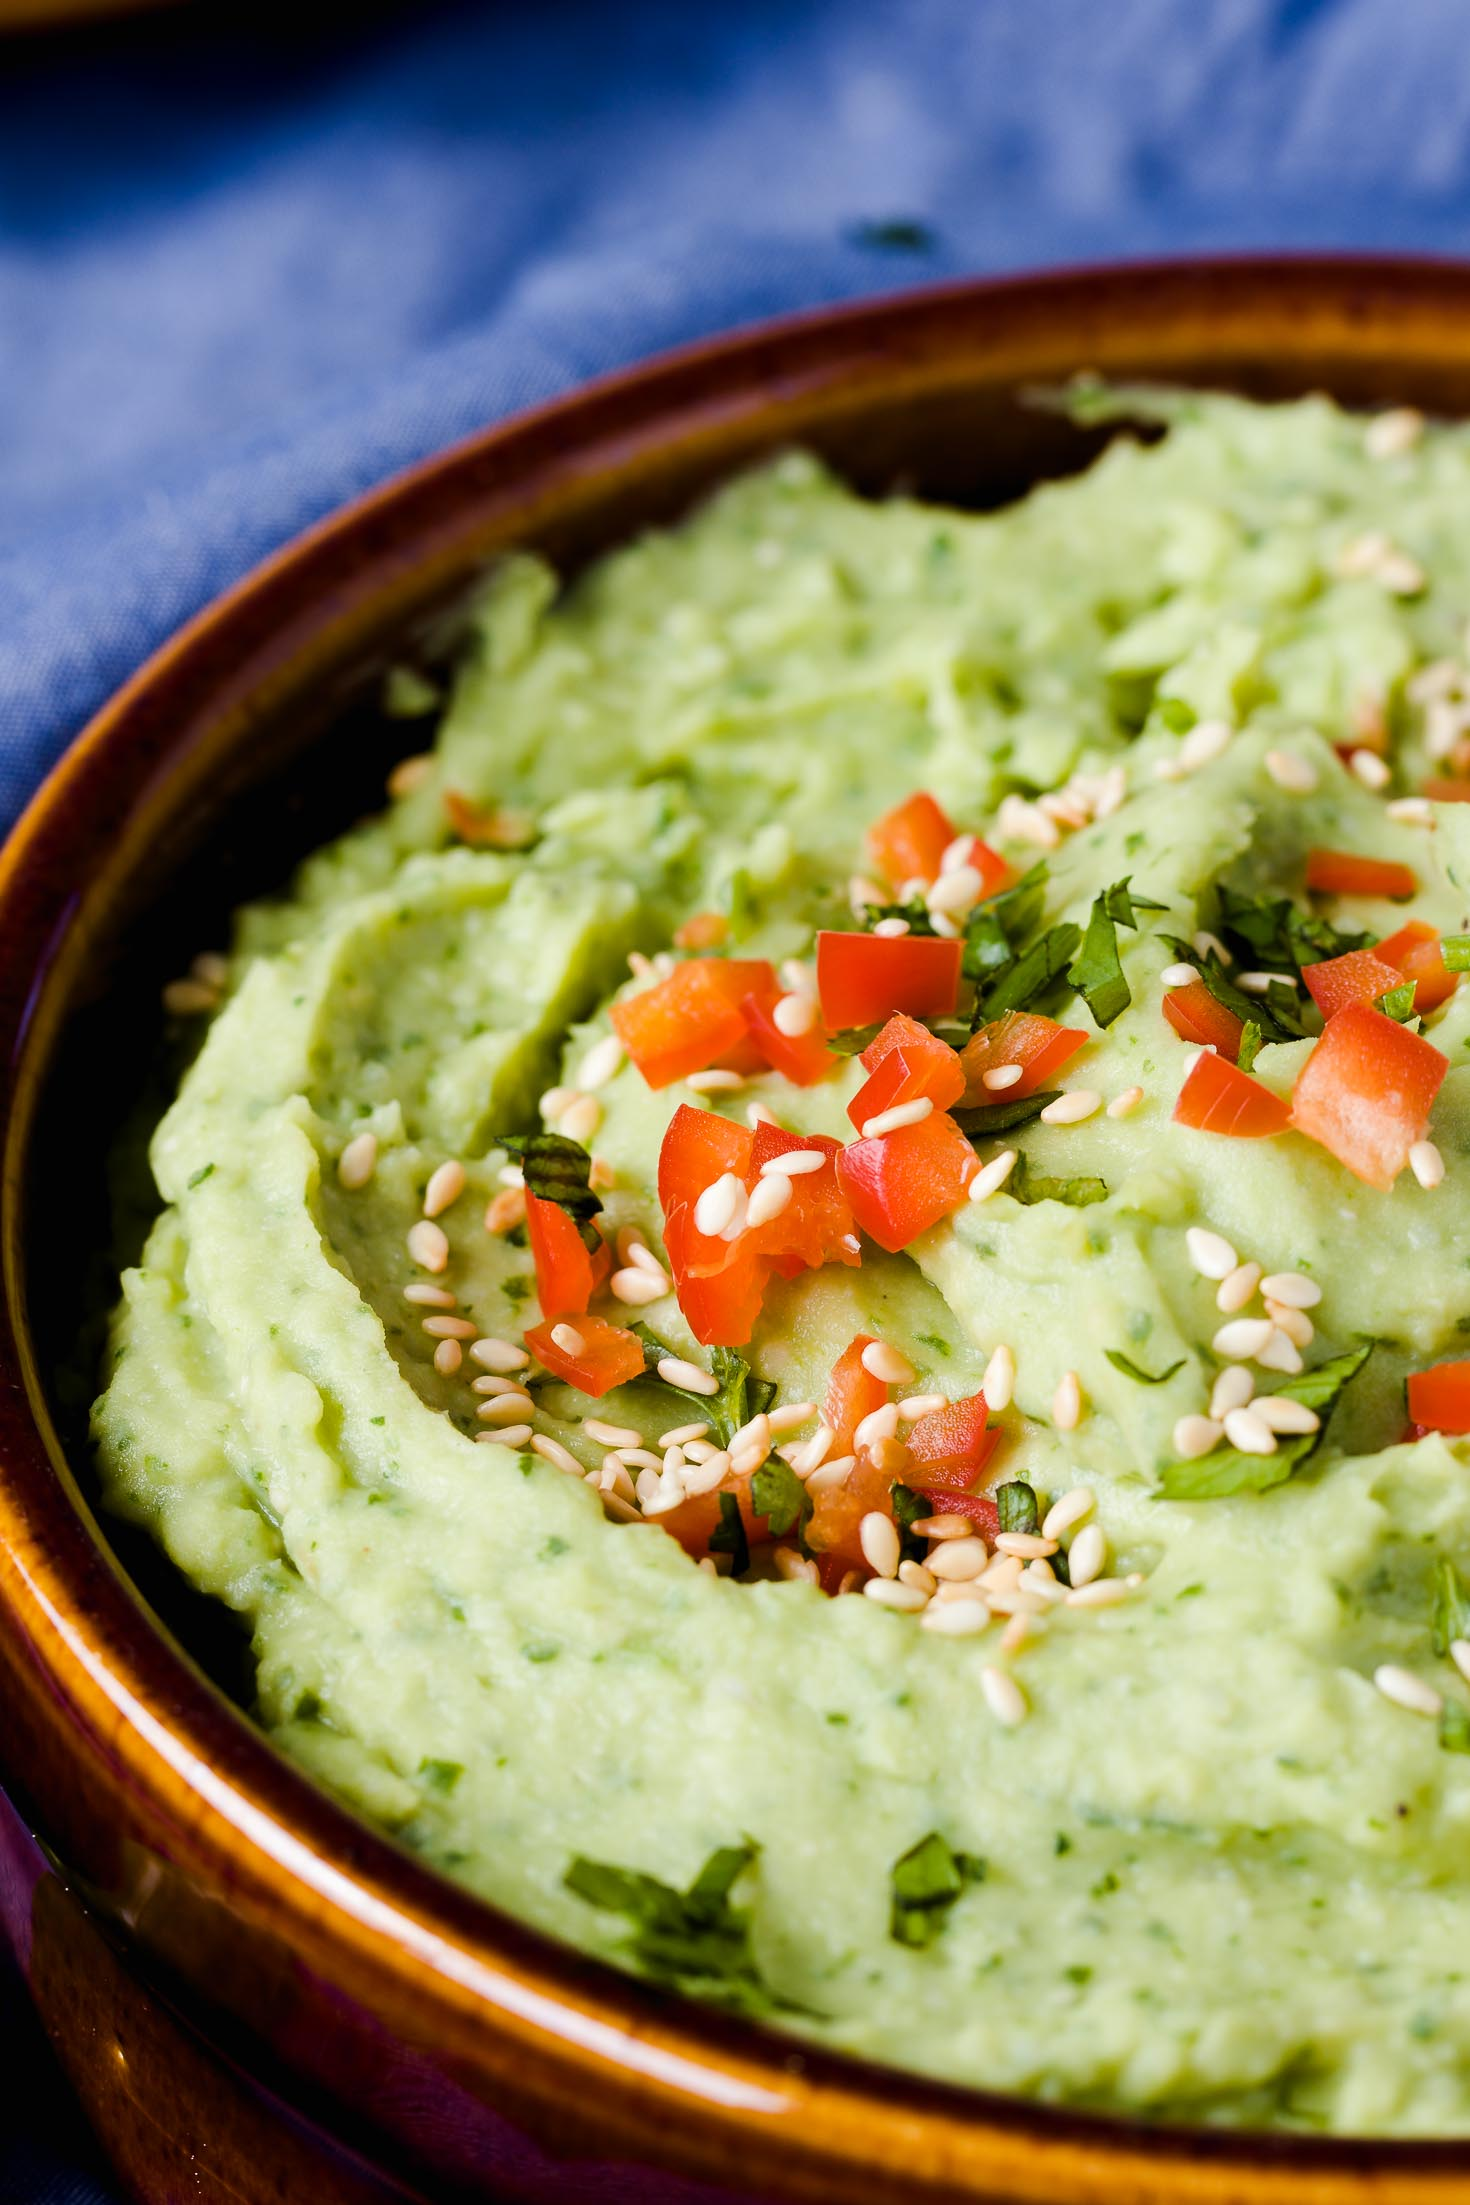 Cilantro Avocado White Bean Dip-closeup view-showing the texture of the dip